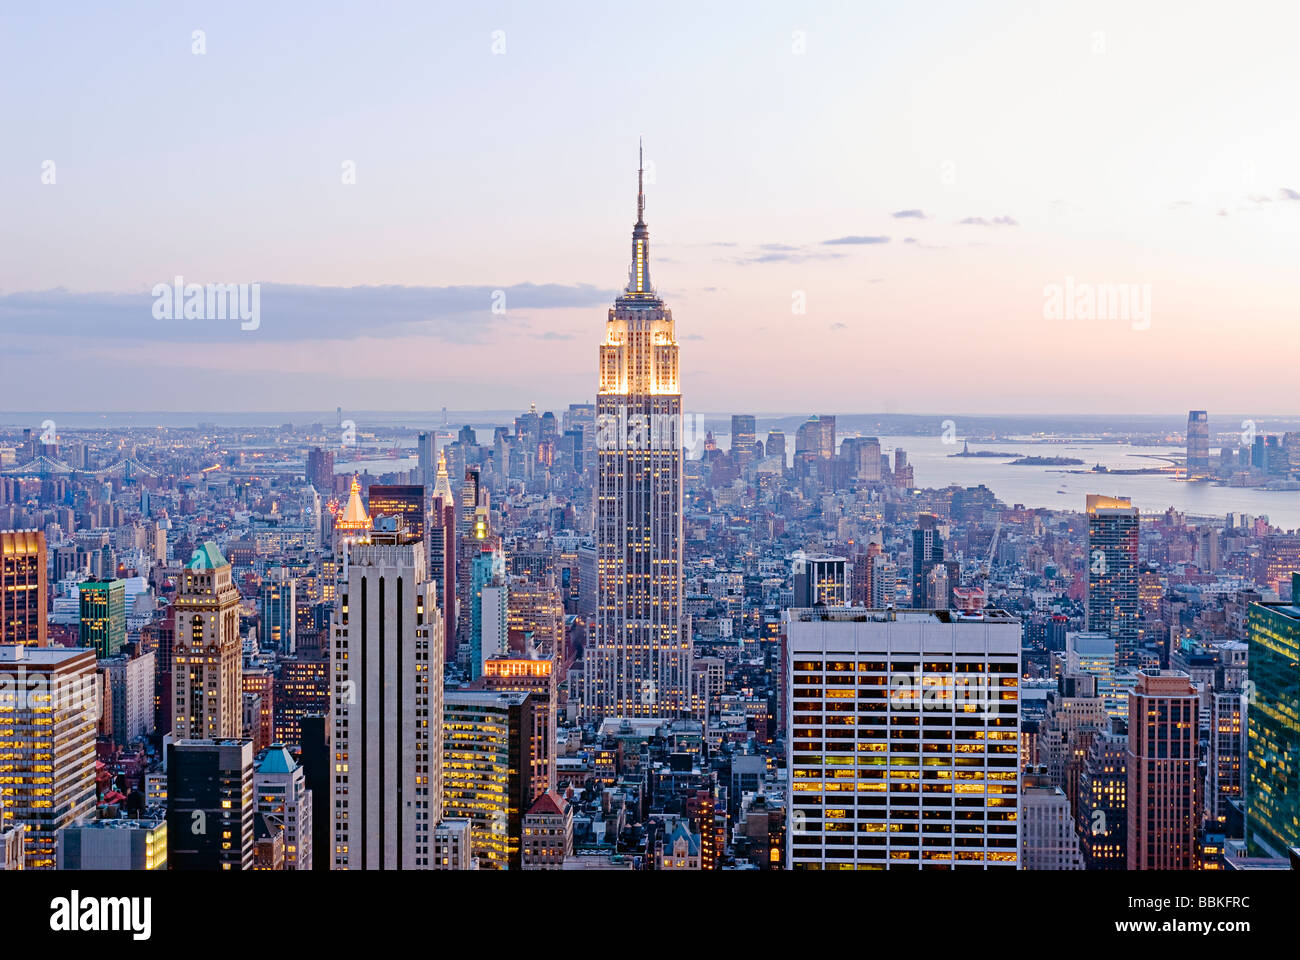 Vista aerea dello Skyline di Manhattan con l' Empire State Building di New York City. Immagini Stock